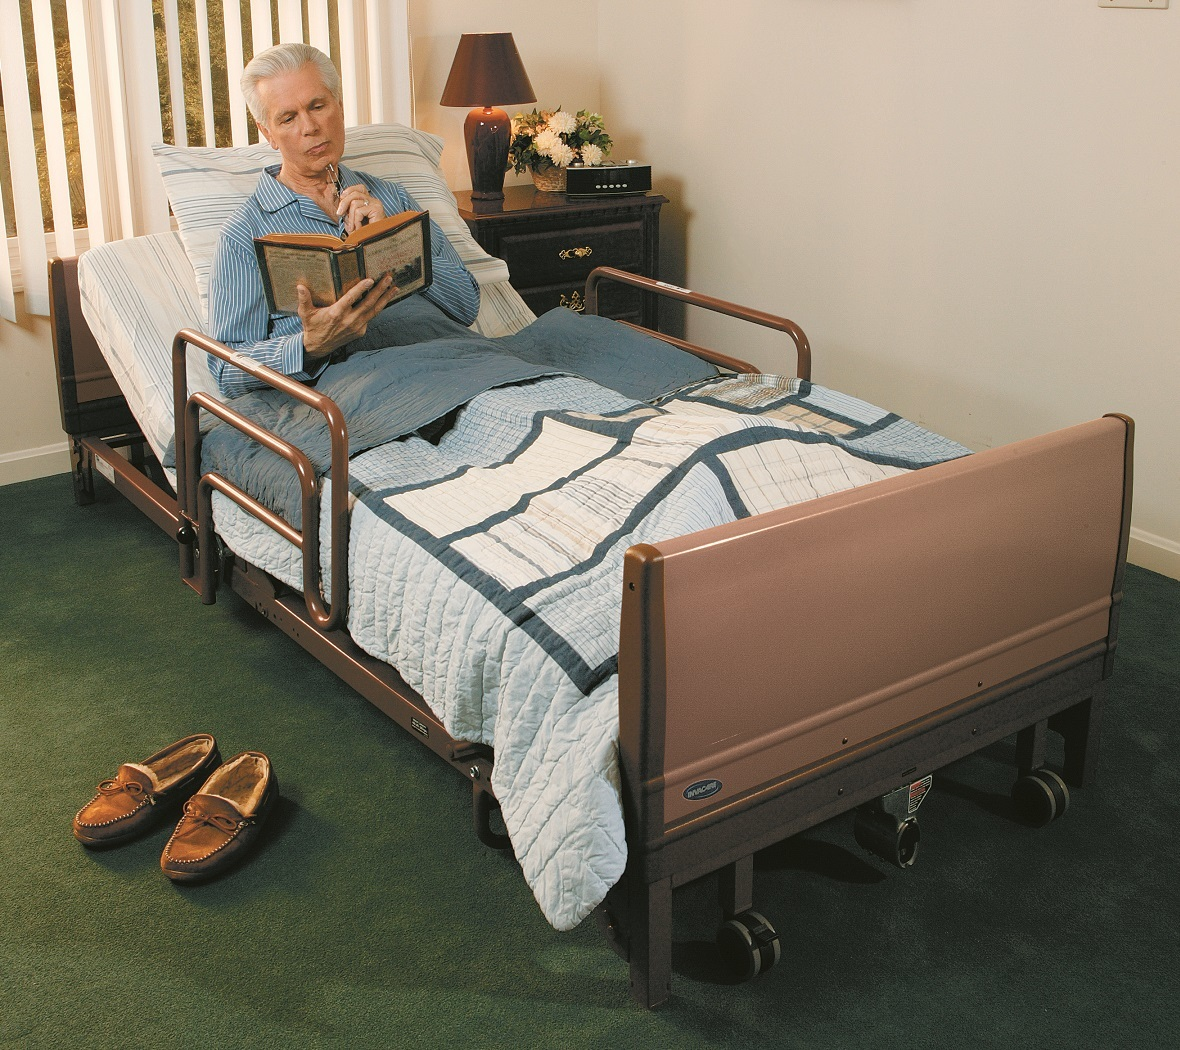 Picture of: Hospital Bed Types Which Is Best For Bedridden Seniors And Disabled